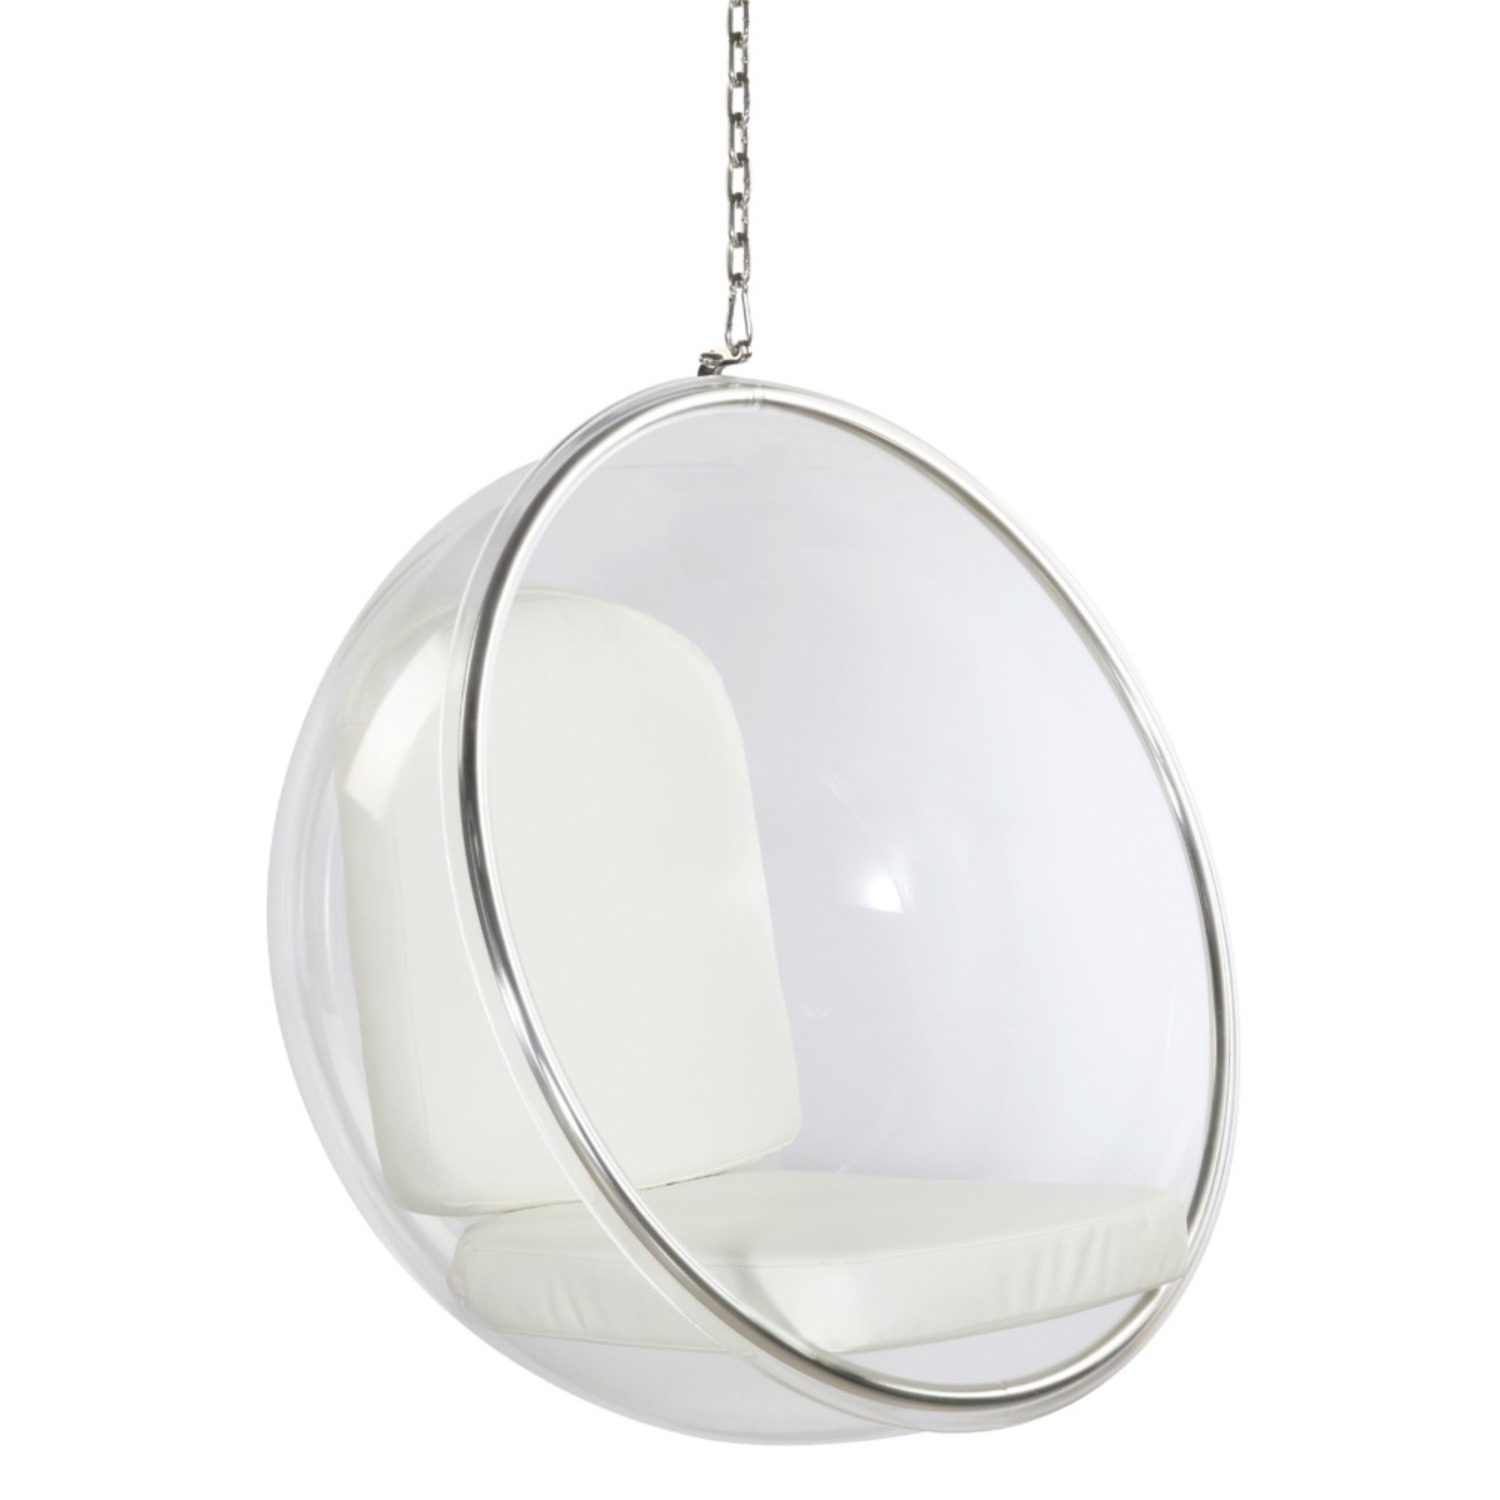 Hanging Chair In Clear Acrylic & White PU Leather - image-0